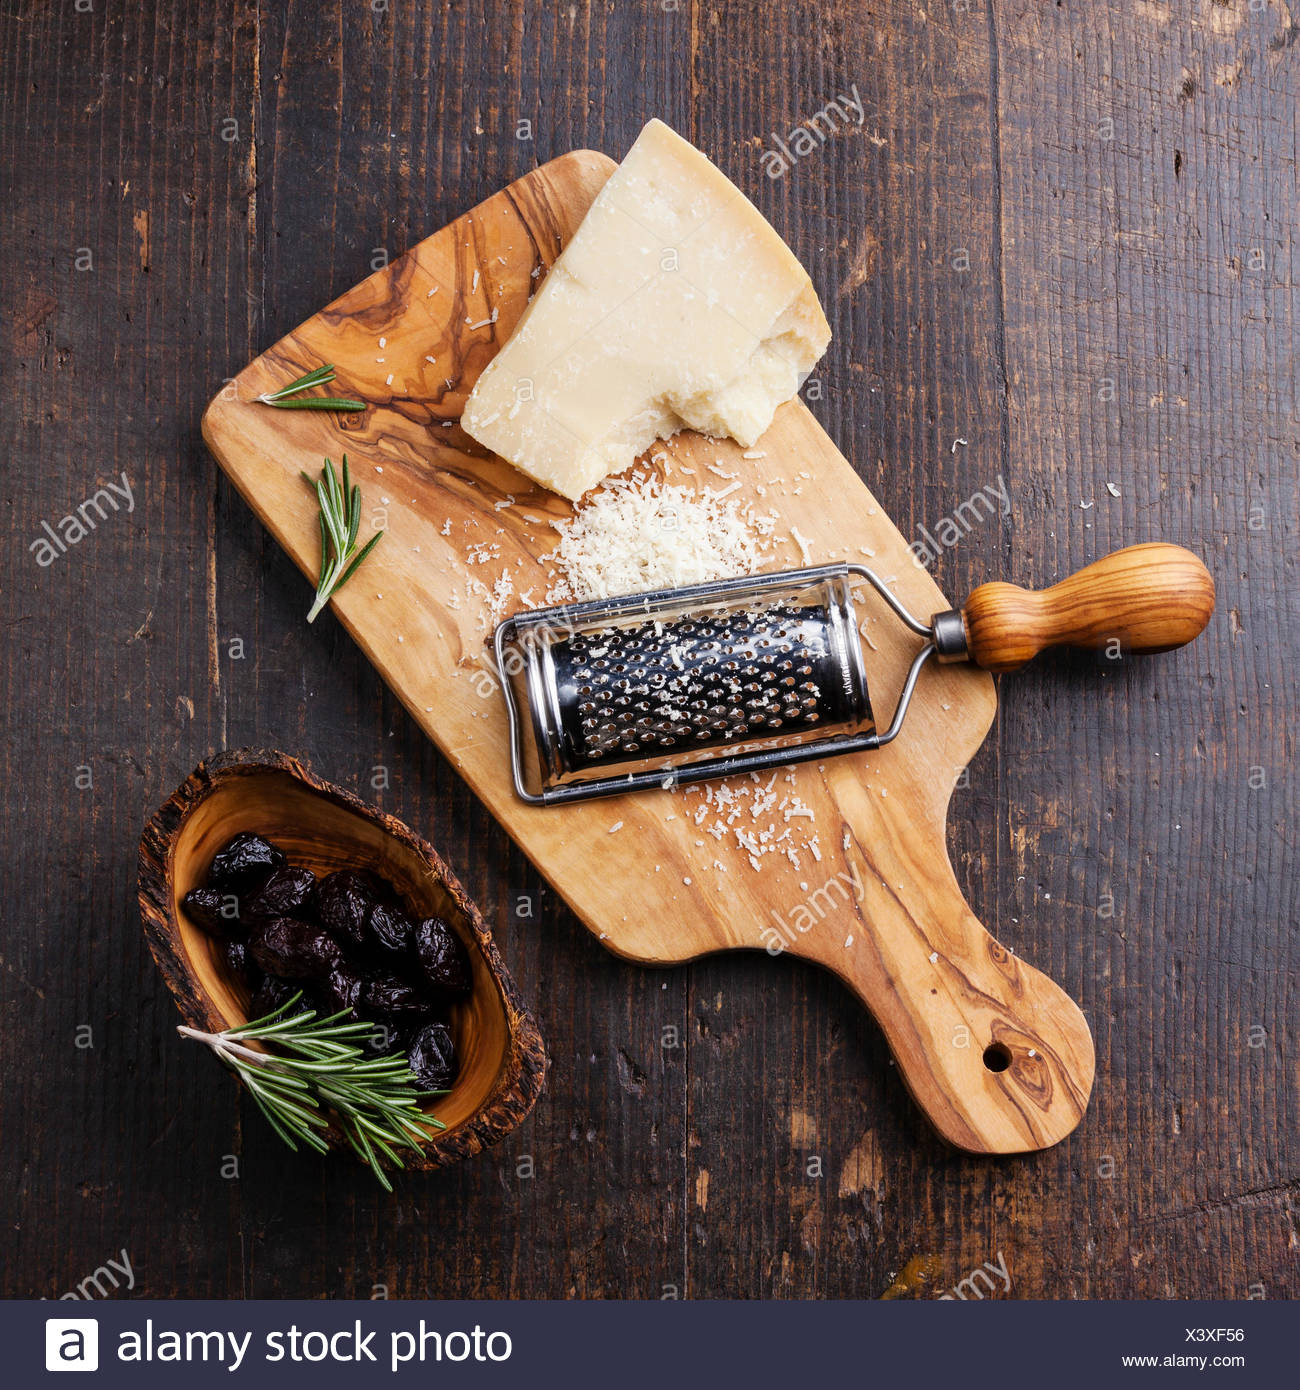 Parmesan cheese and sun-dried olives on olive wood cutting board - Stock Image